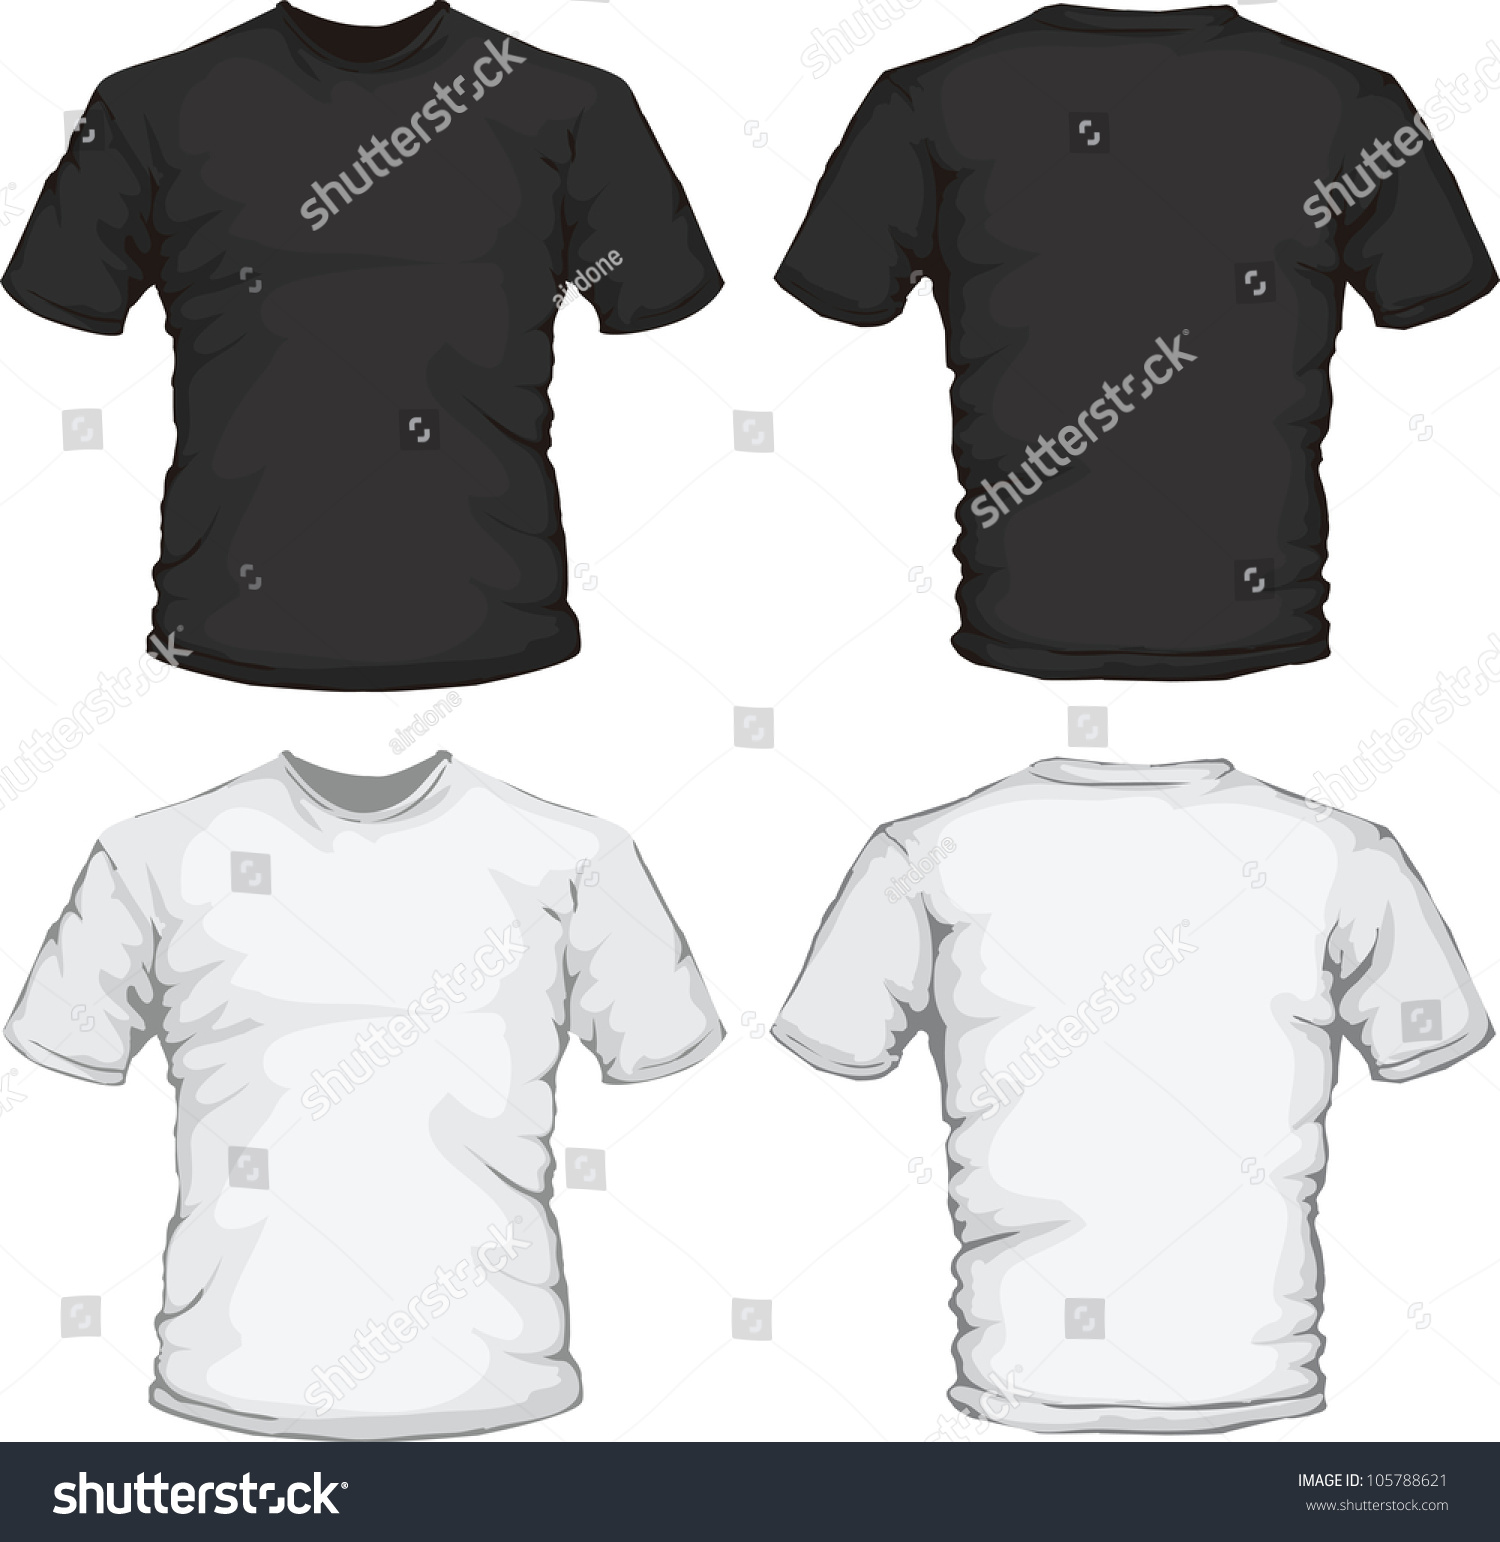 White t shirt front and back template - Vector Illustration Of Black And White Male Shirts Template Front And Back Design Check